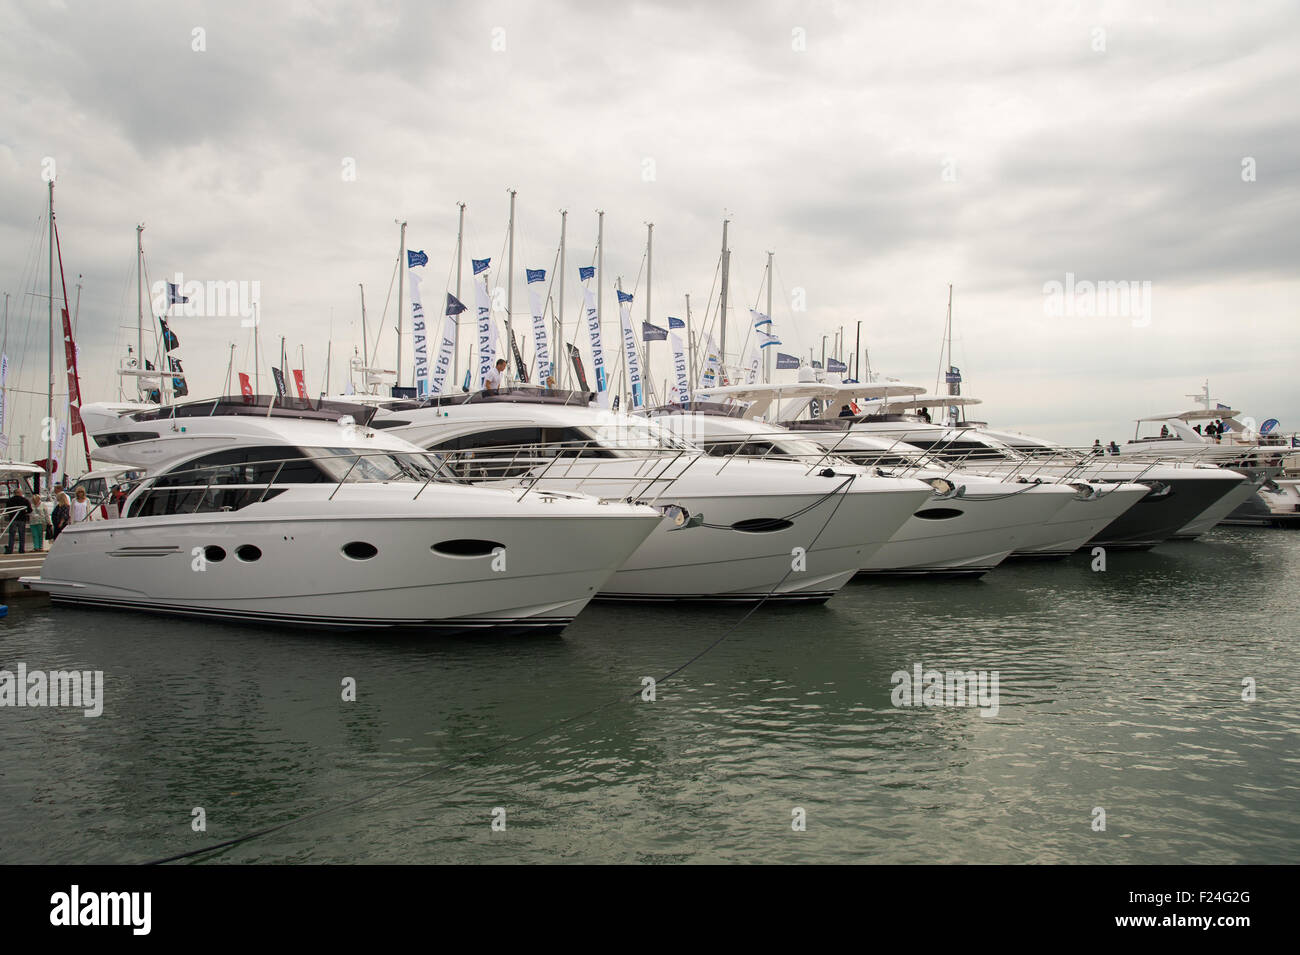 Southampton, UK. 11th September 2015. Southampton Boat Show 2015. A row of Princess yachts moored in the marina. Stock Photo